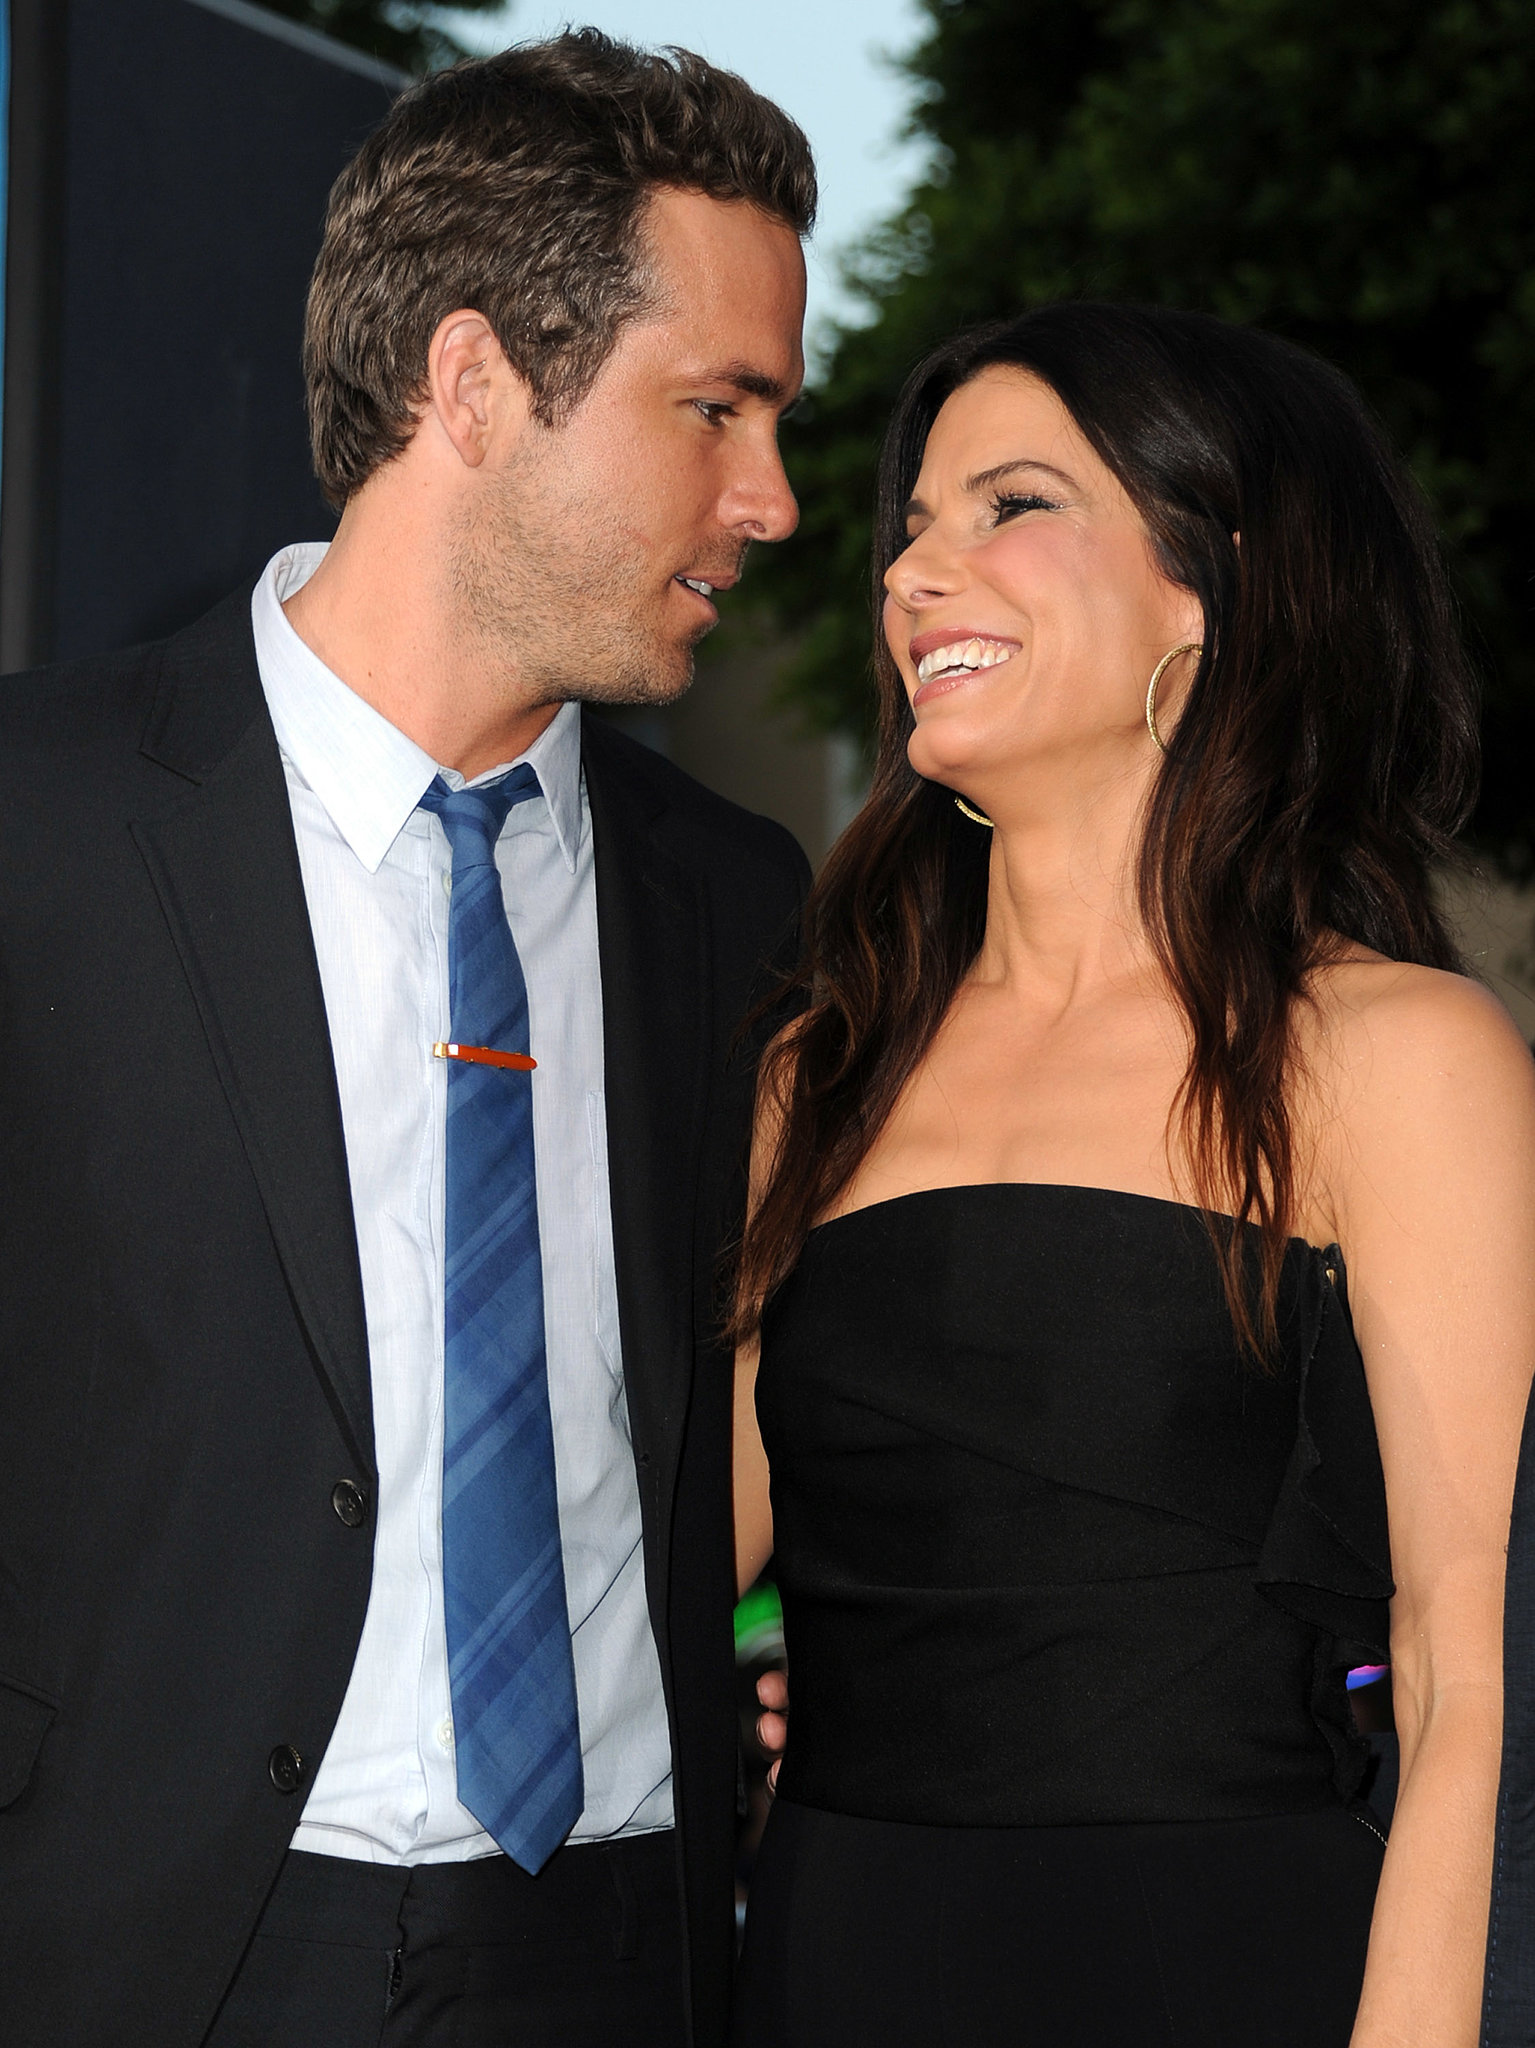 Ryan Reynolds and Sandra Bullock were introduced by a mutual friend years ago and formed a strong friendship on the set of 2009's The Proposal. They supported each other through divorces, his from Scarlett Johansson and hers from Je